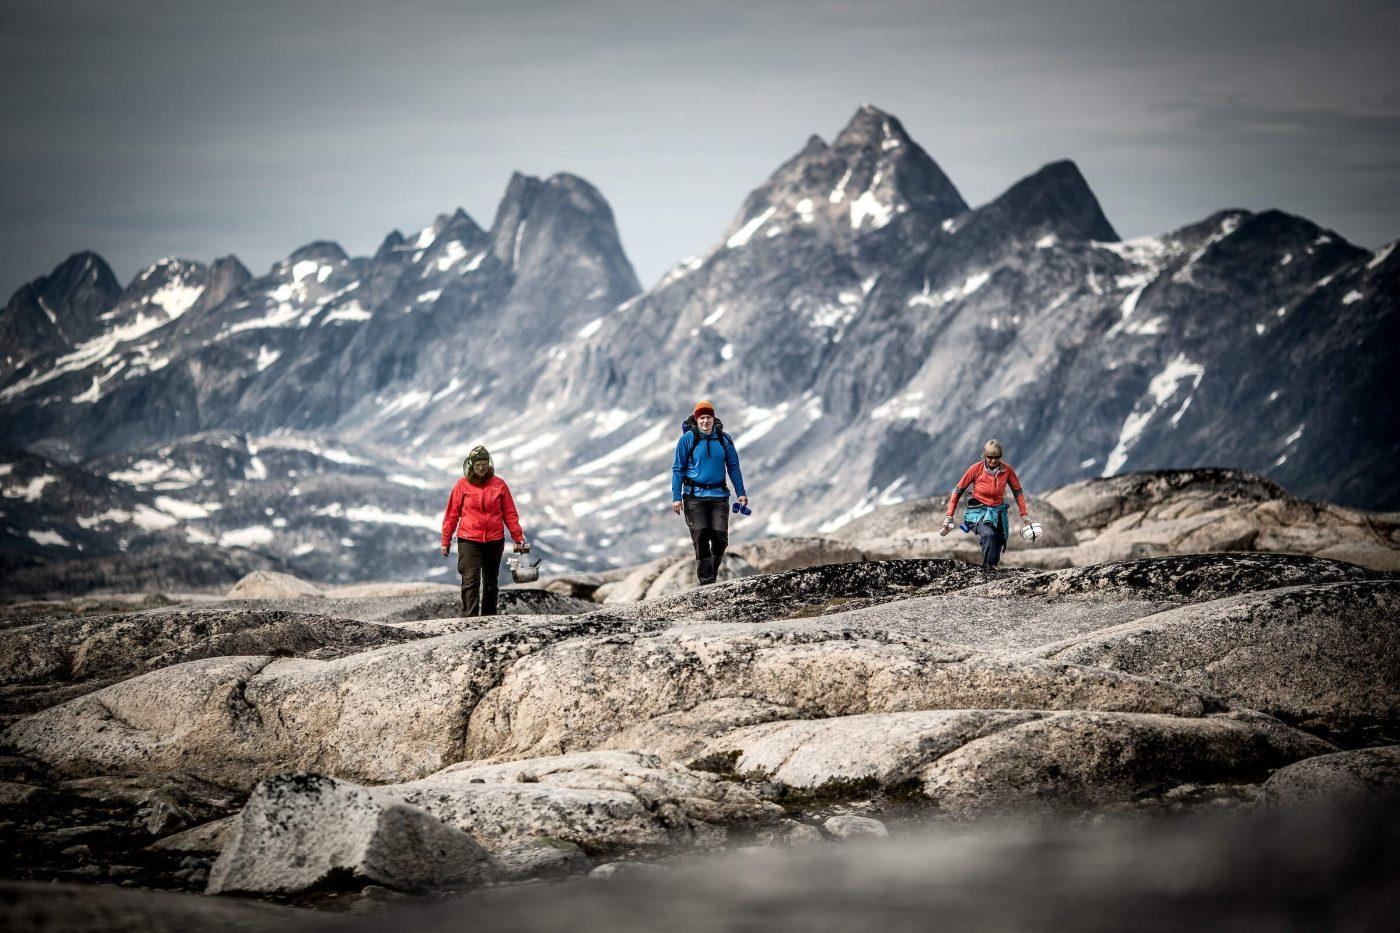 Three hikers in the mountains near Qernertivartivit not far from Kulusuk in East Greenland. By Mads Pihl